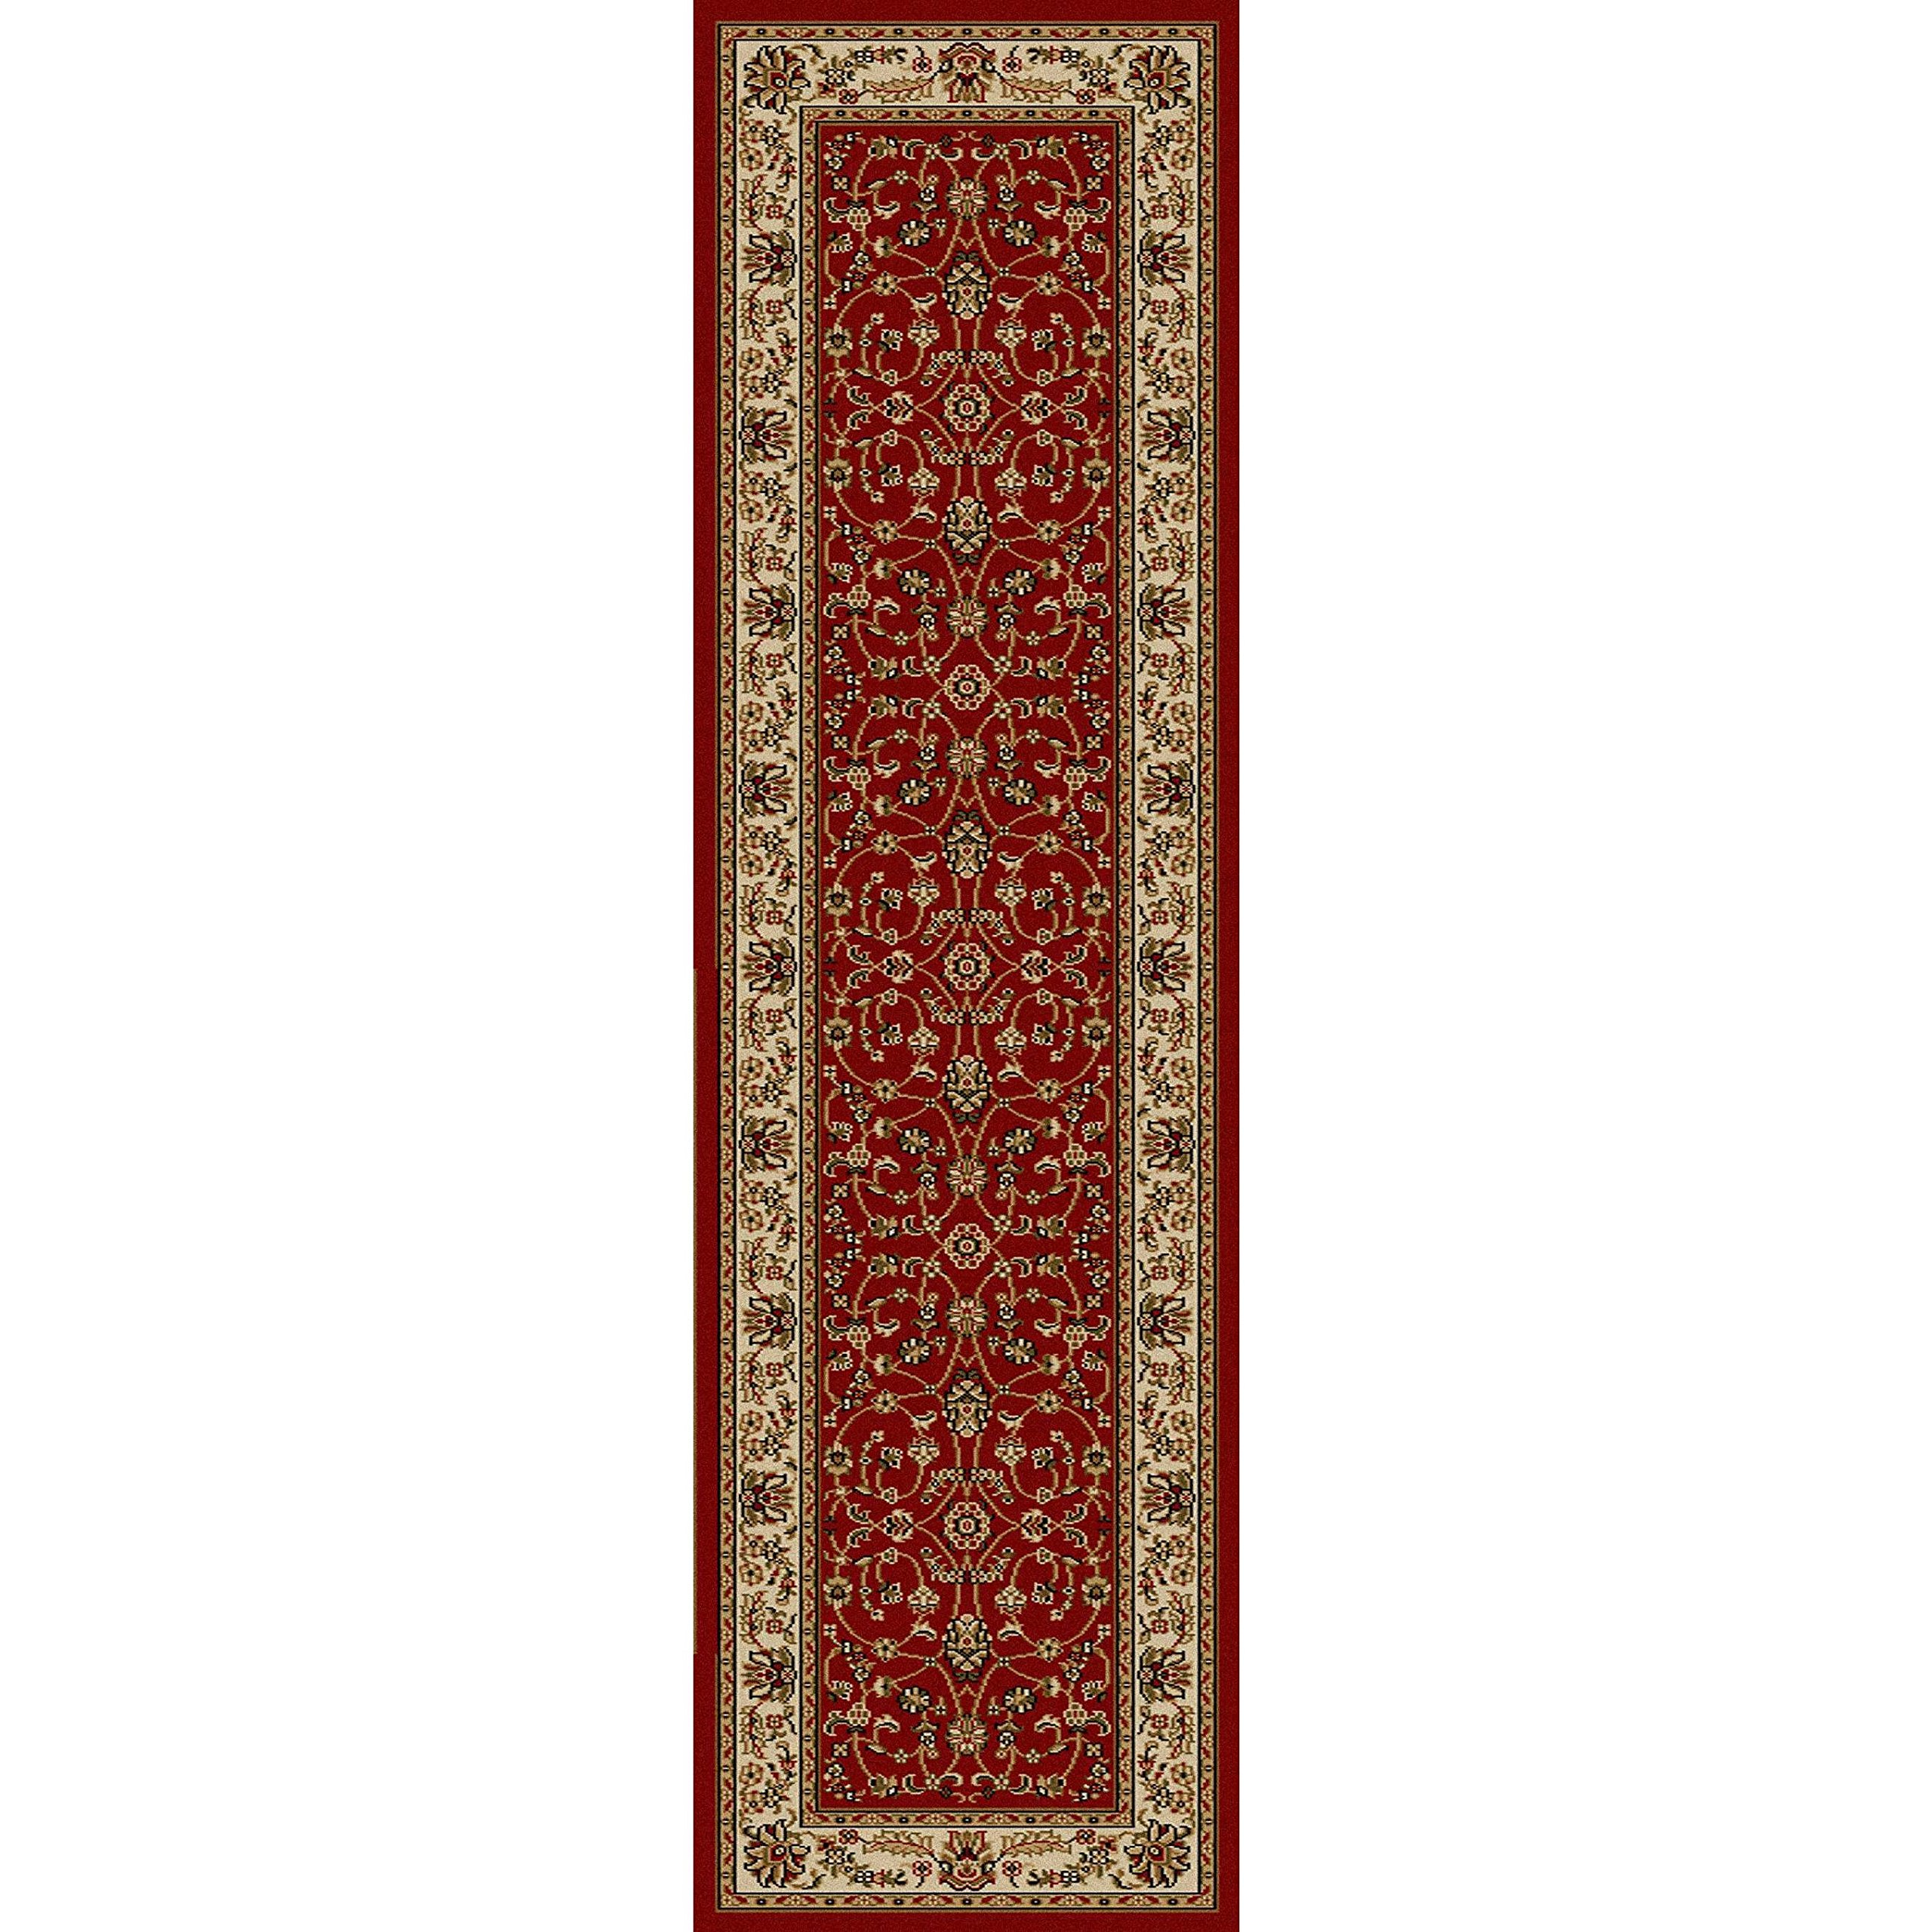 1 Piece 2'2'' x 7'7''ft Ivory Deep Red Orietnal Hallway Rug, Long Floral Carpet Entranceway French Country Classic Pattern Bordered Narrow Flooring Runner Style, Victorian Themed Royal Vintage, Olefin